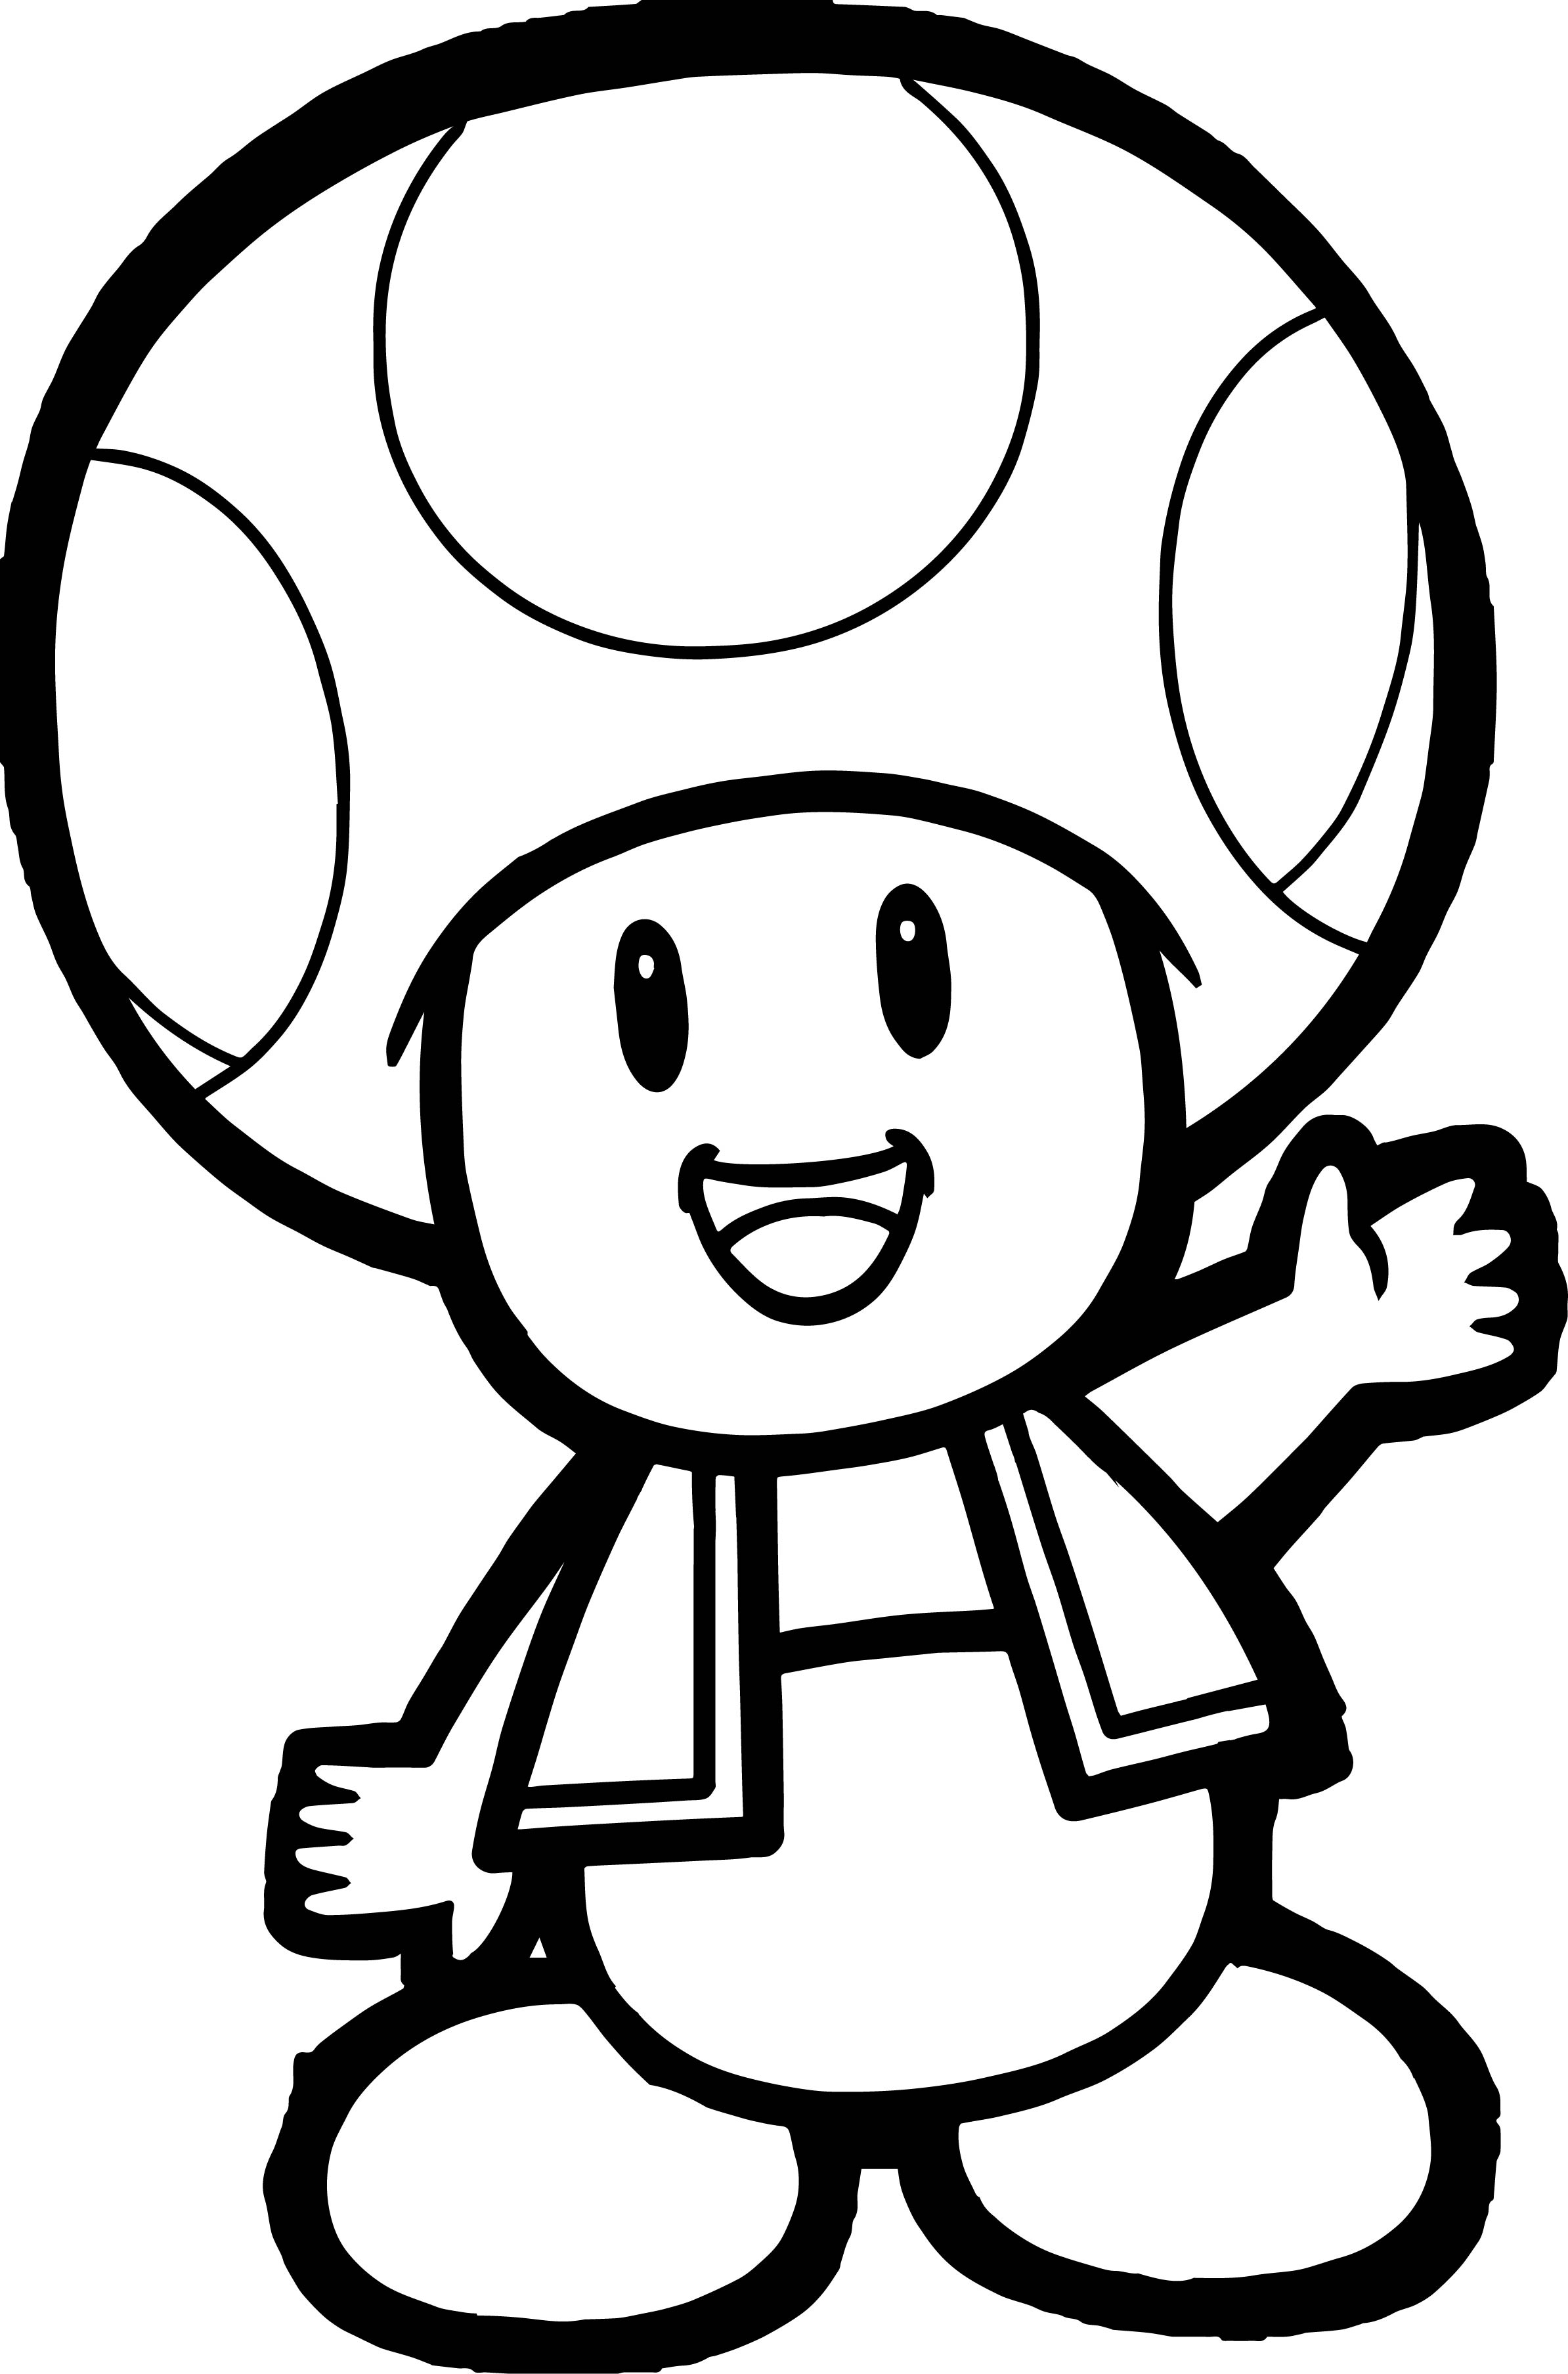 free printable super mario coloring pages 24 super mario brothers coloring page in 2020 with images mario coloring super free pages printable